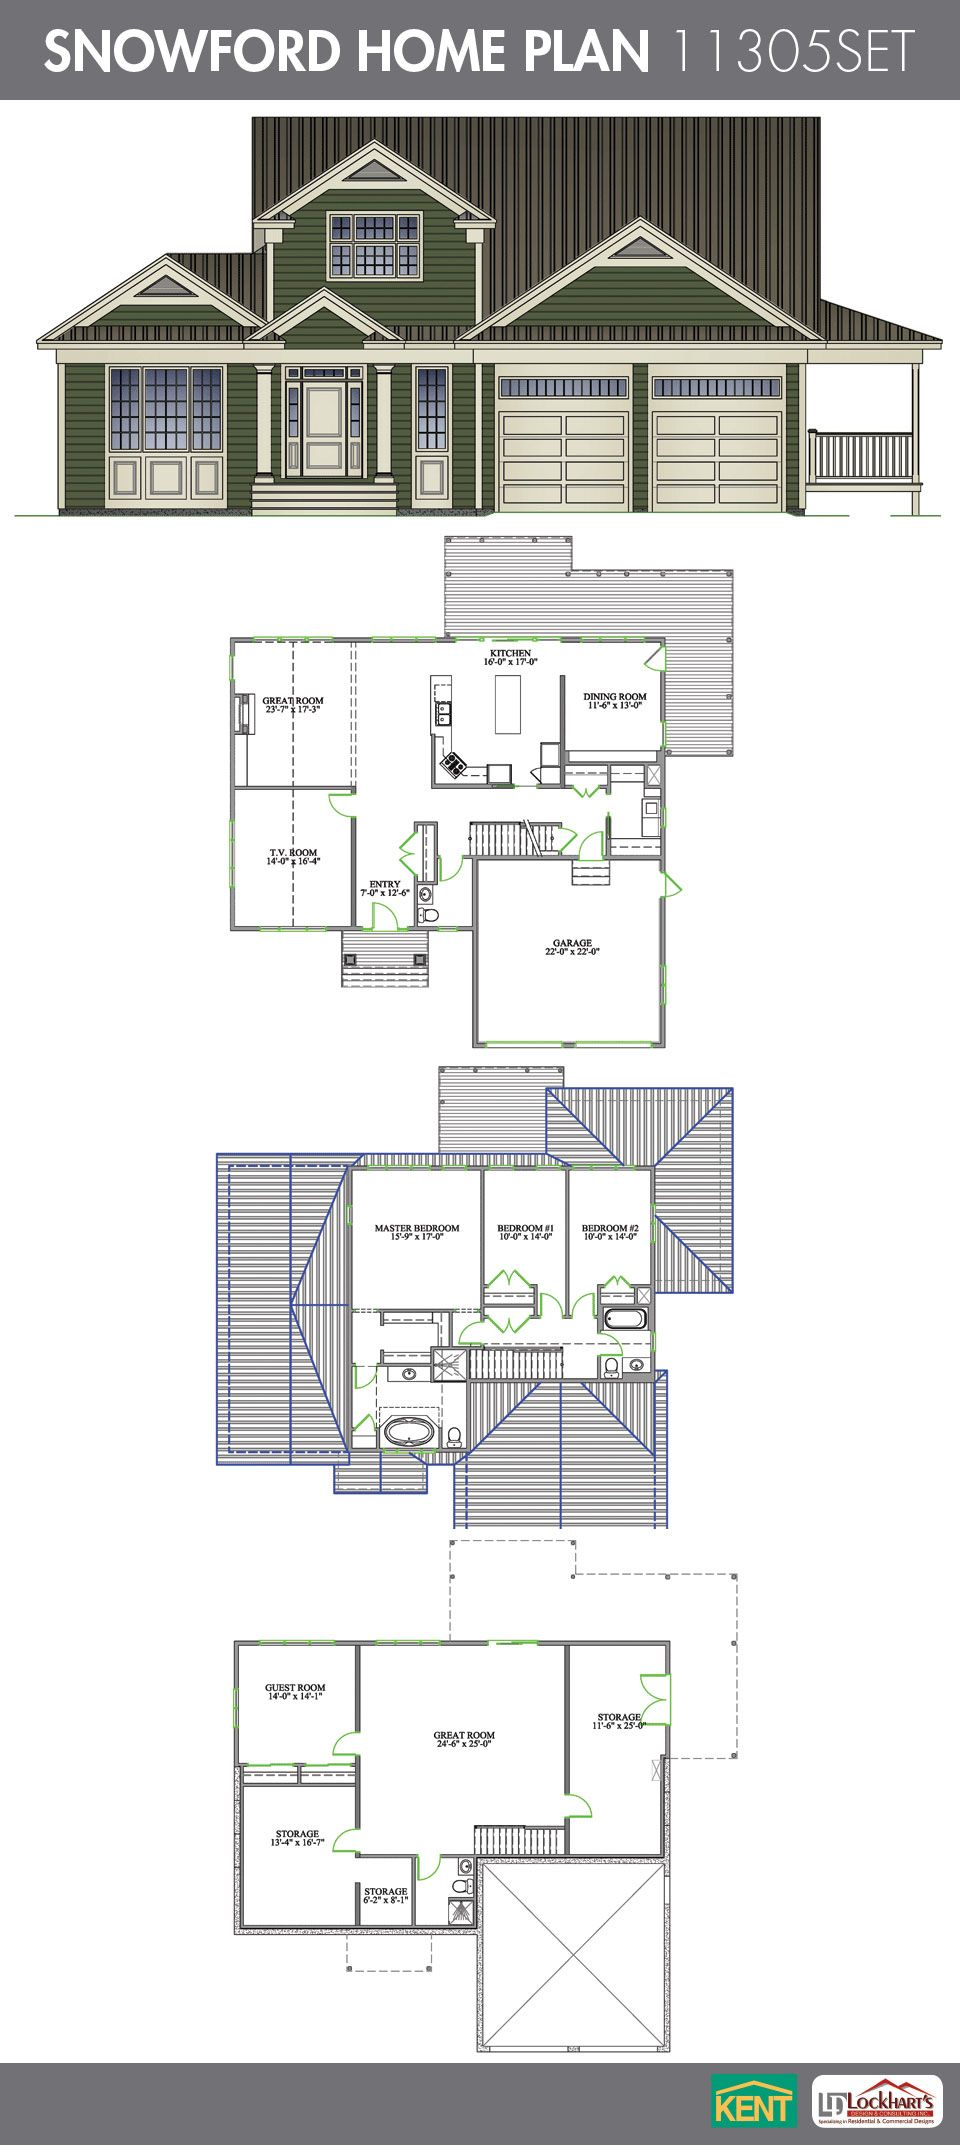 Snowford Home Plan House Plans Dream House Plans Kent Building